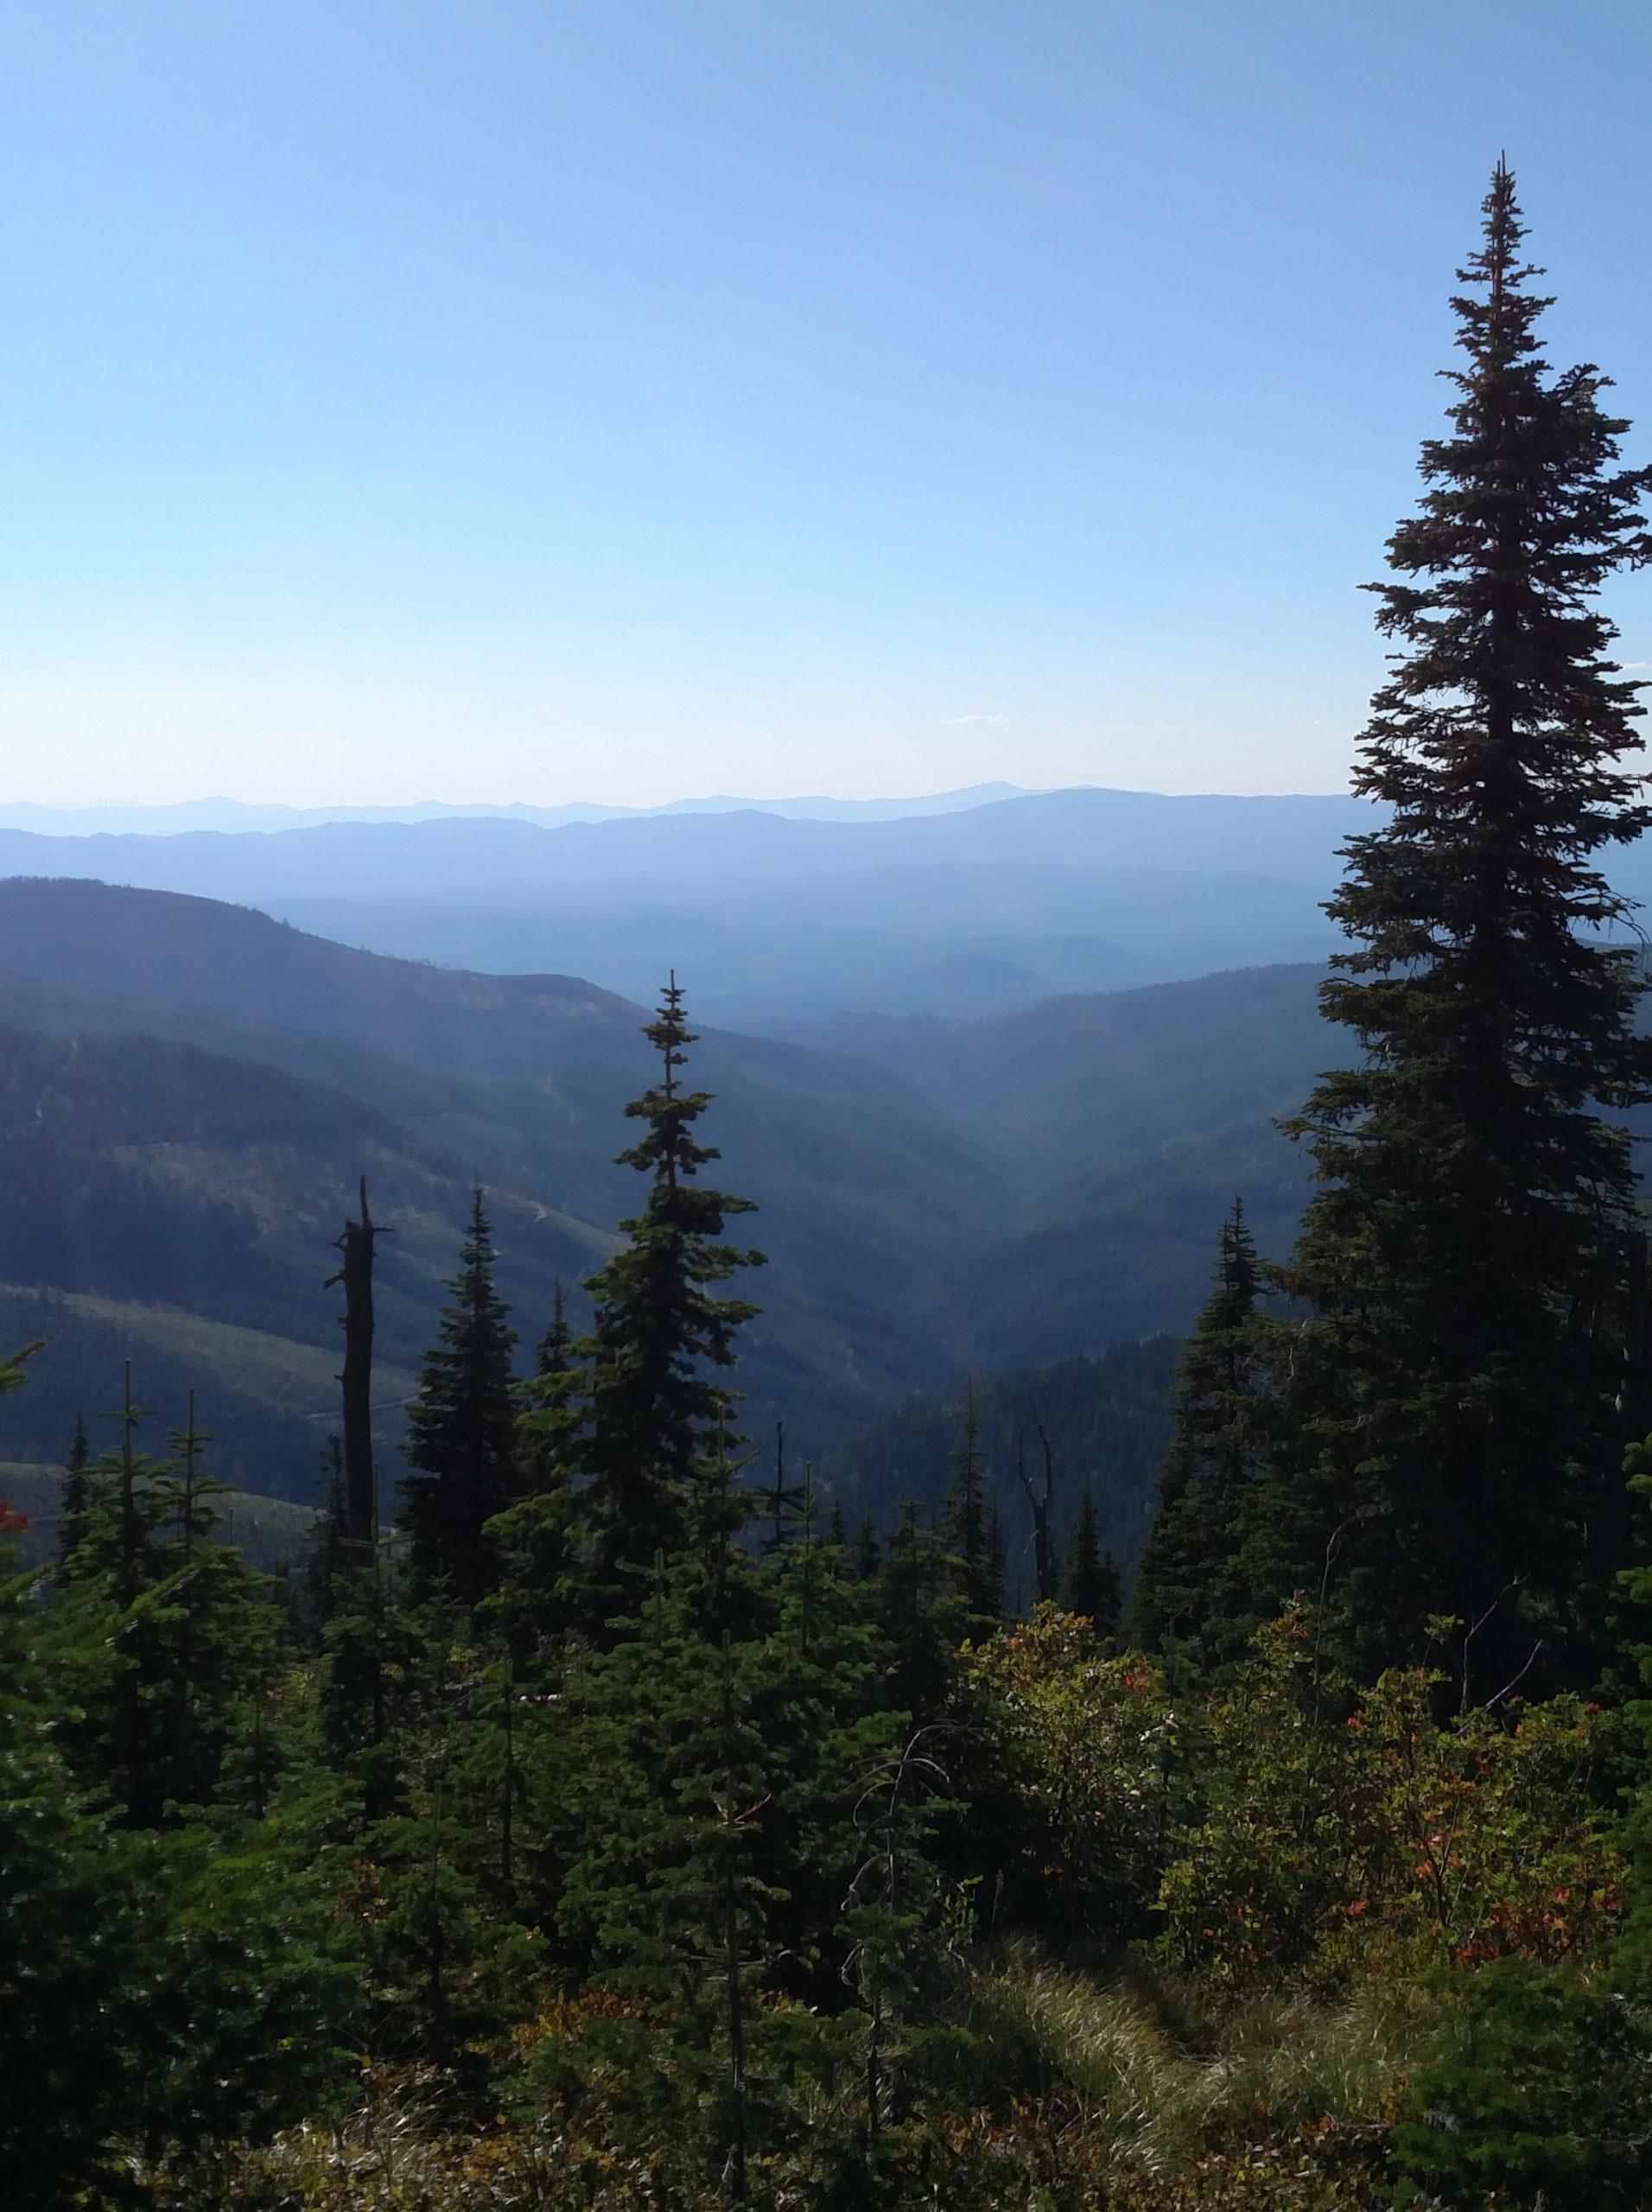 view from a mountain into a forested valley